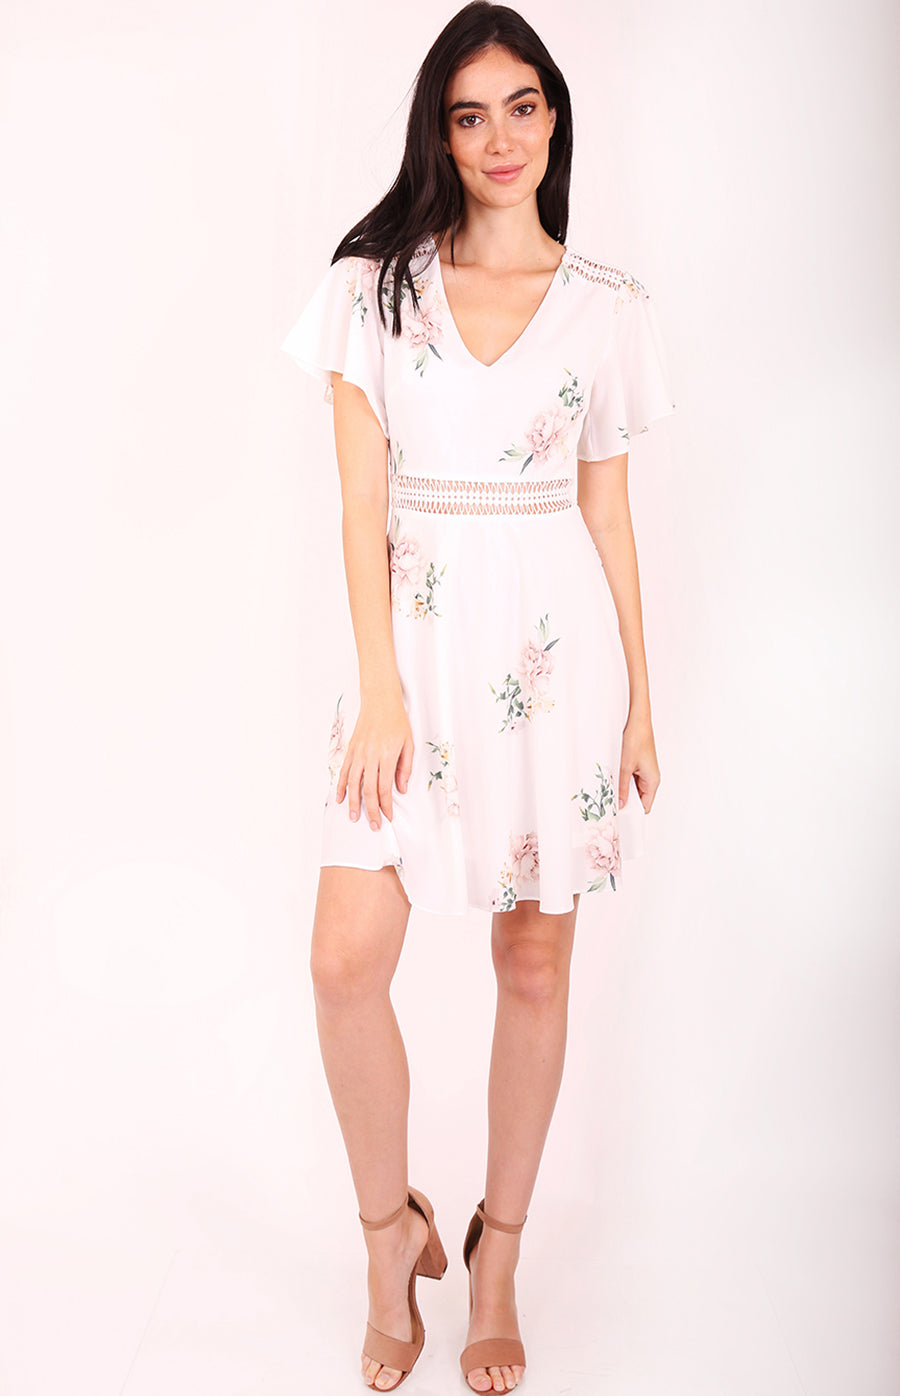 Sophia A-line Floral Dress in White